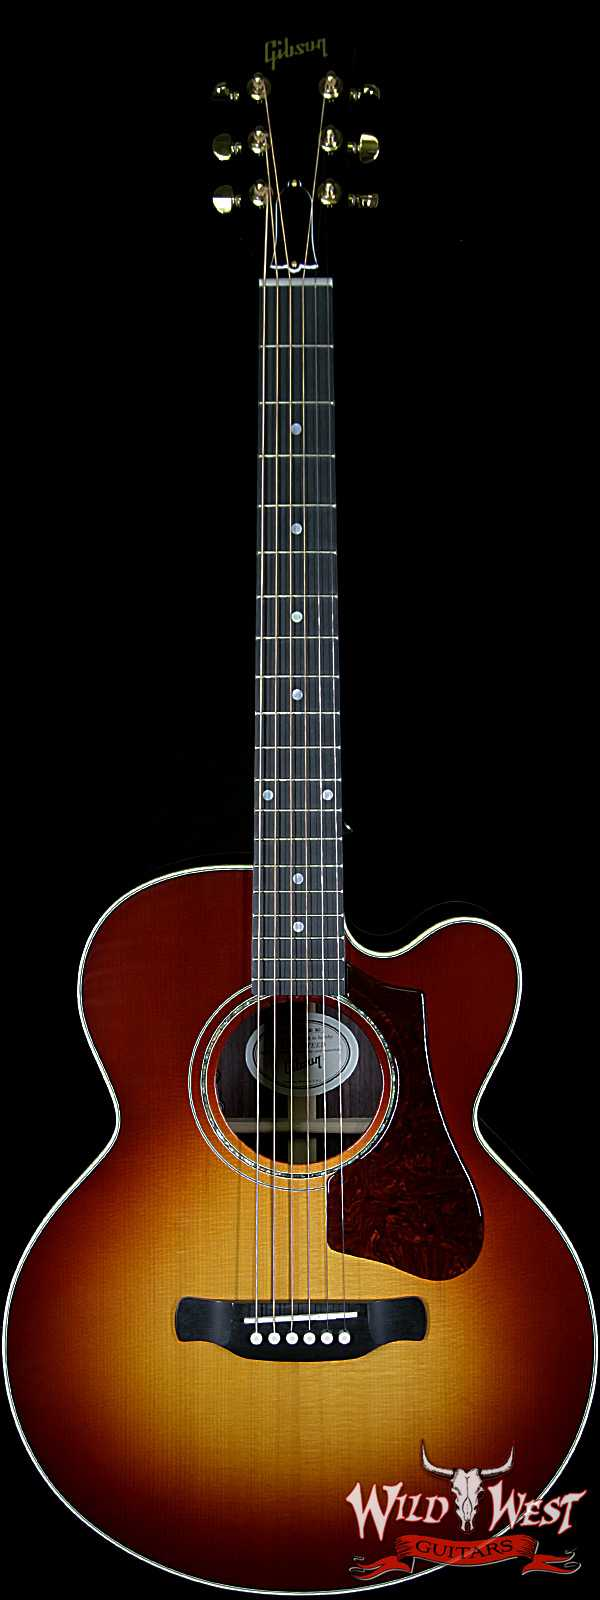 2018 Gibson Montana Parlor Rosewood AG(Avant Garde) Cutaway Acoustic Electric Sunset Burst